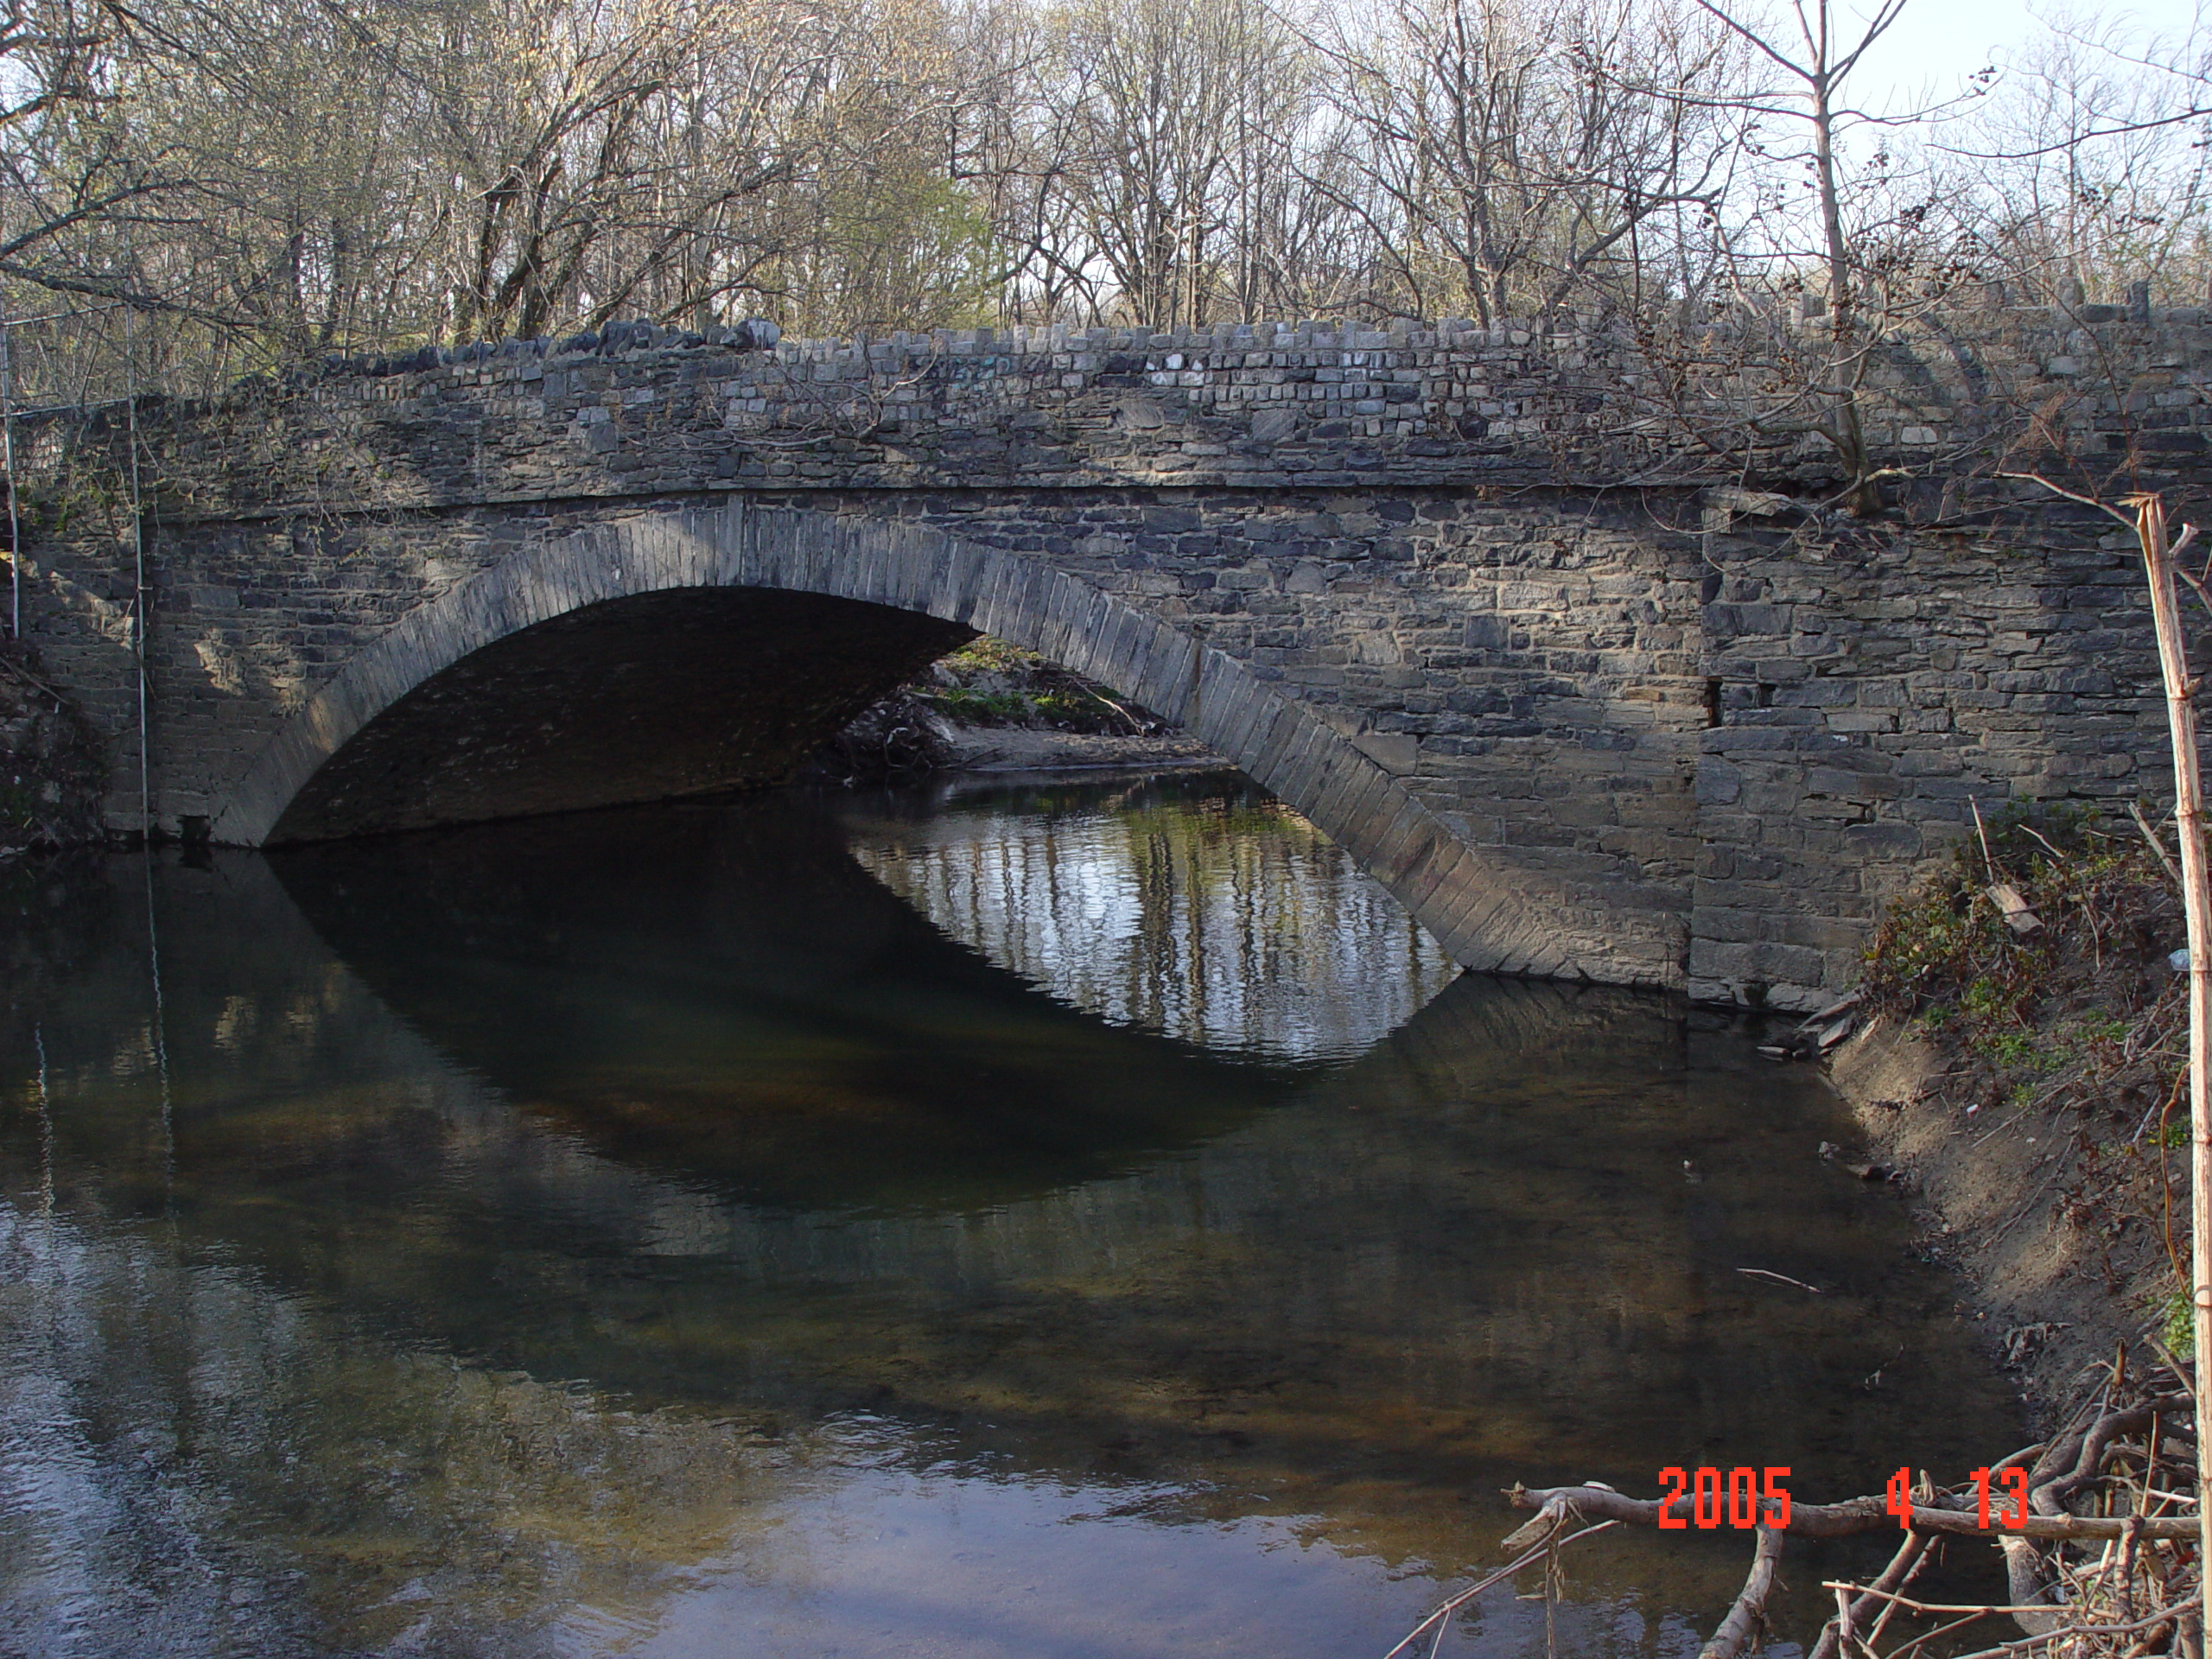 Fisher's Lane Stone Arch Bridge over Tacony Creek